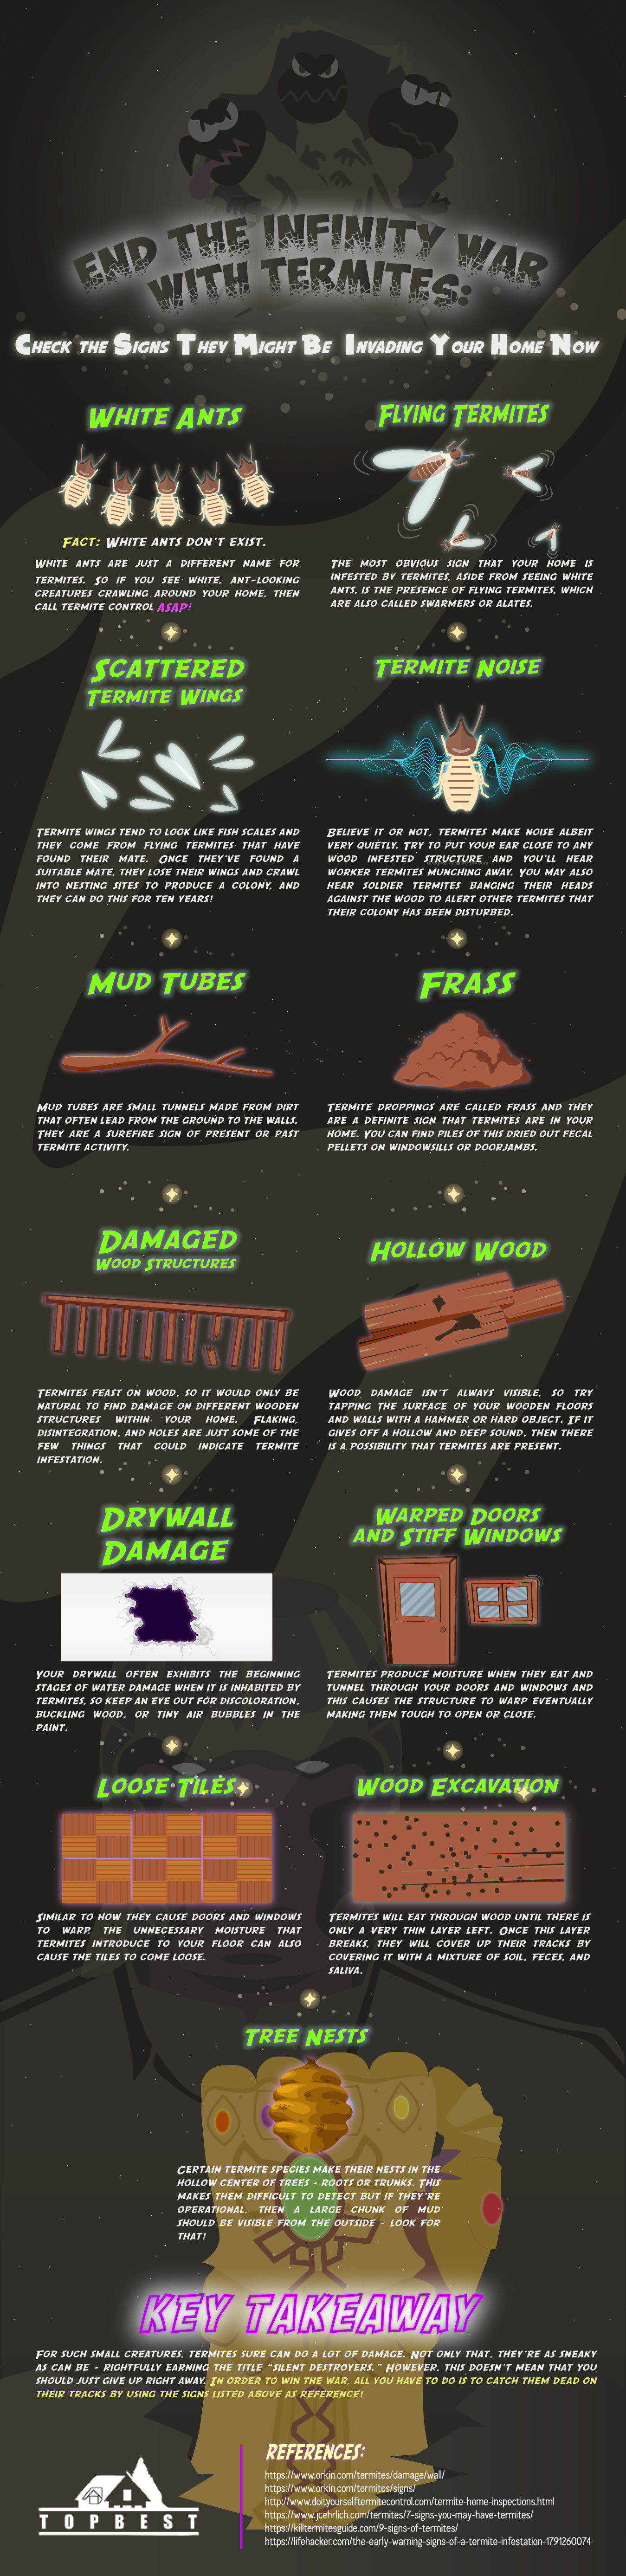 End-the-Infinity-War-with-Termites_Check-the-Signs-They-Might-Be-Invading-Your-Home-Now Infographic